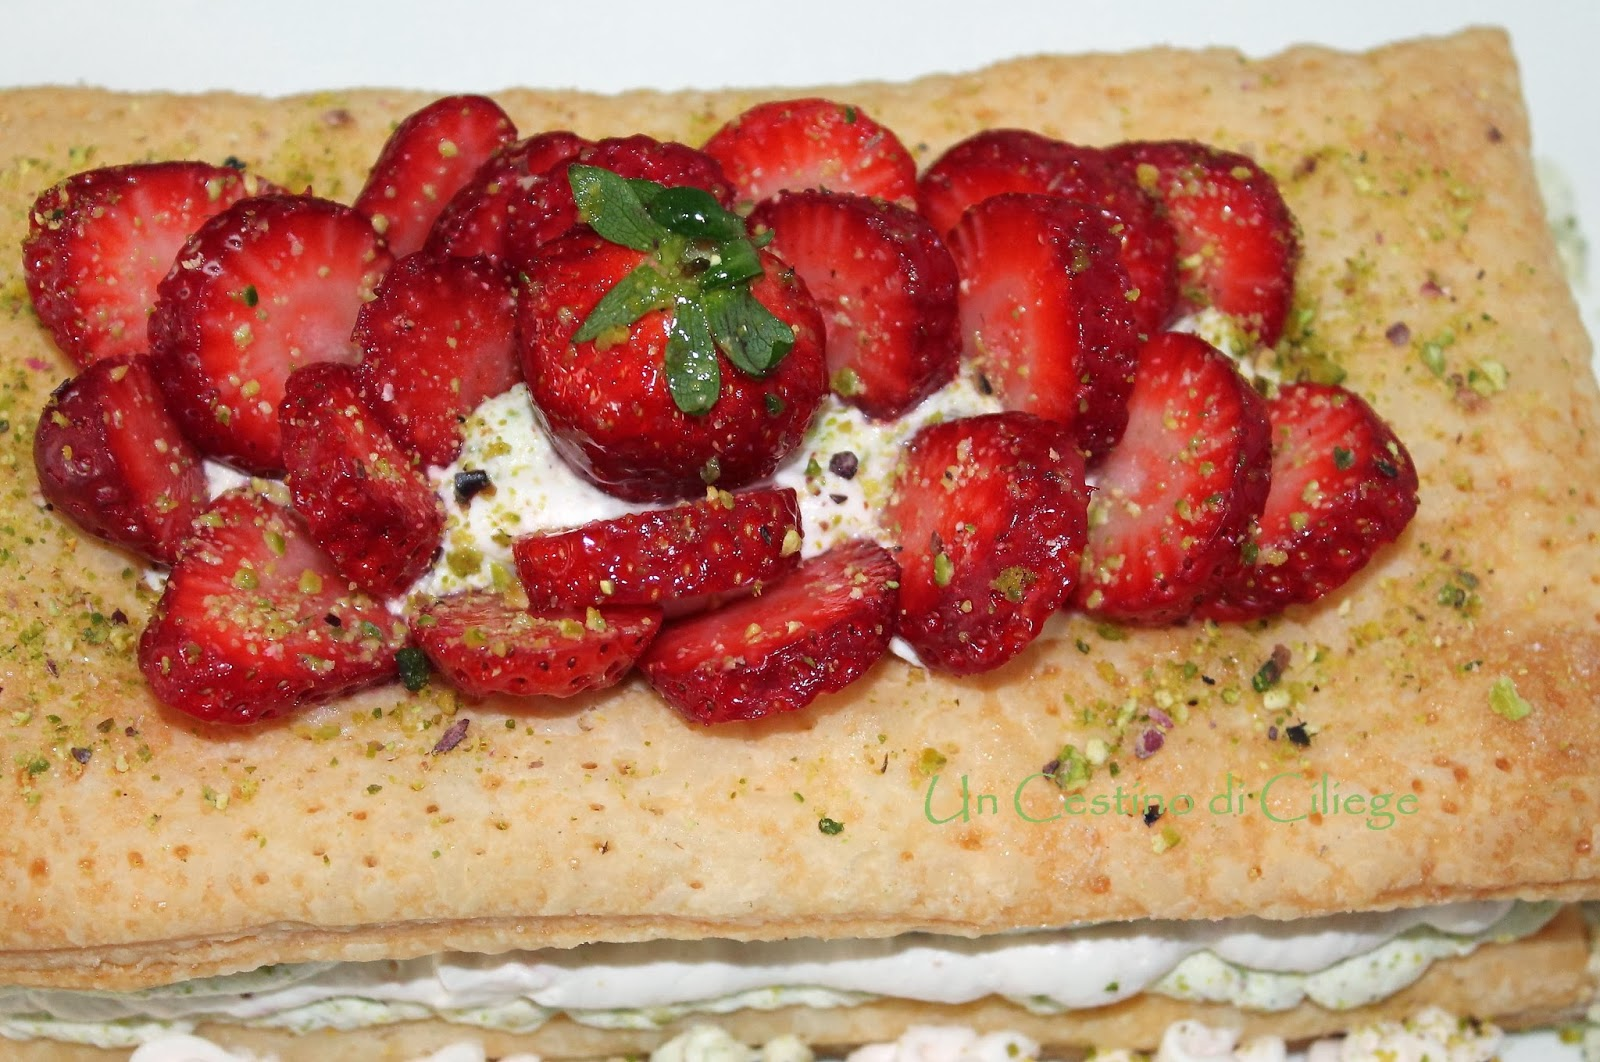 pistachio and strawberry mousse mille fevilles